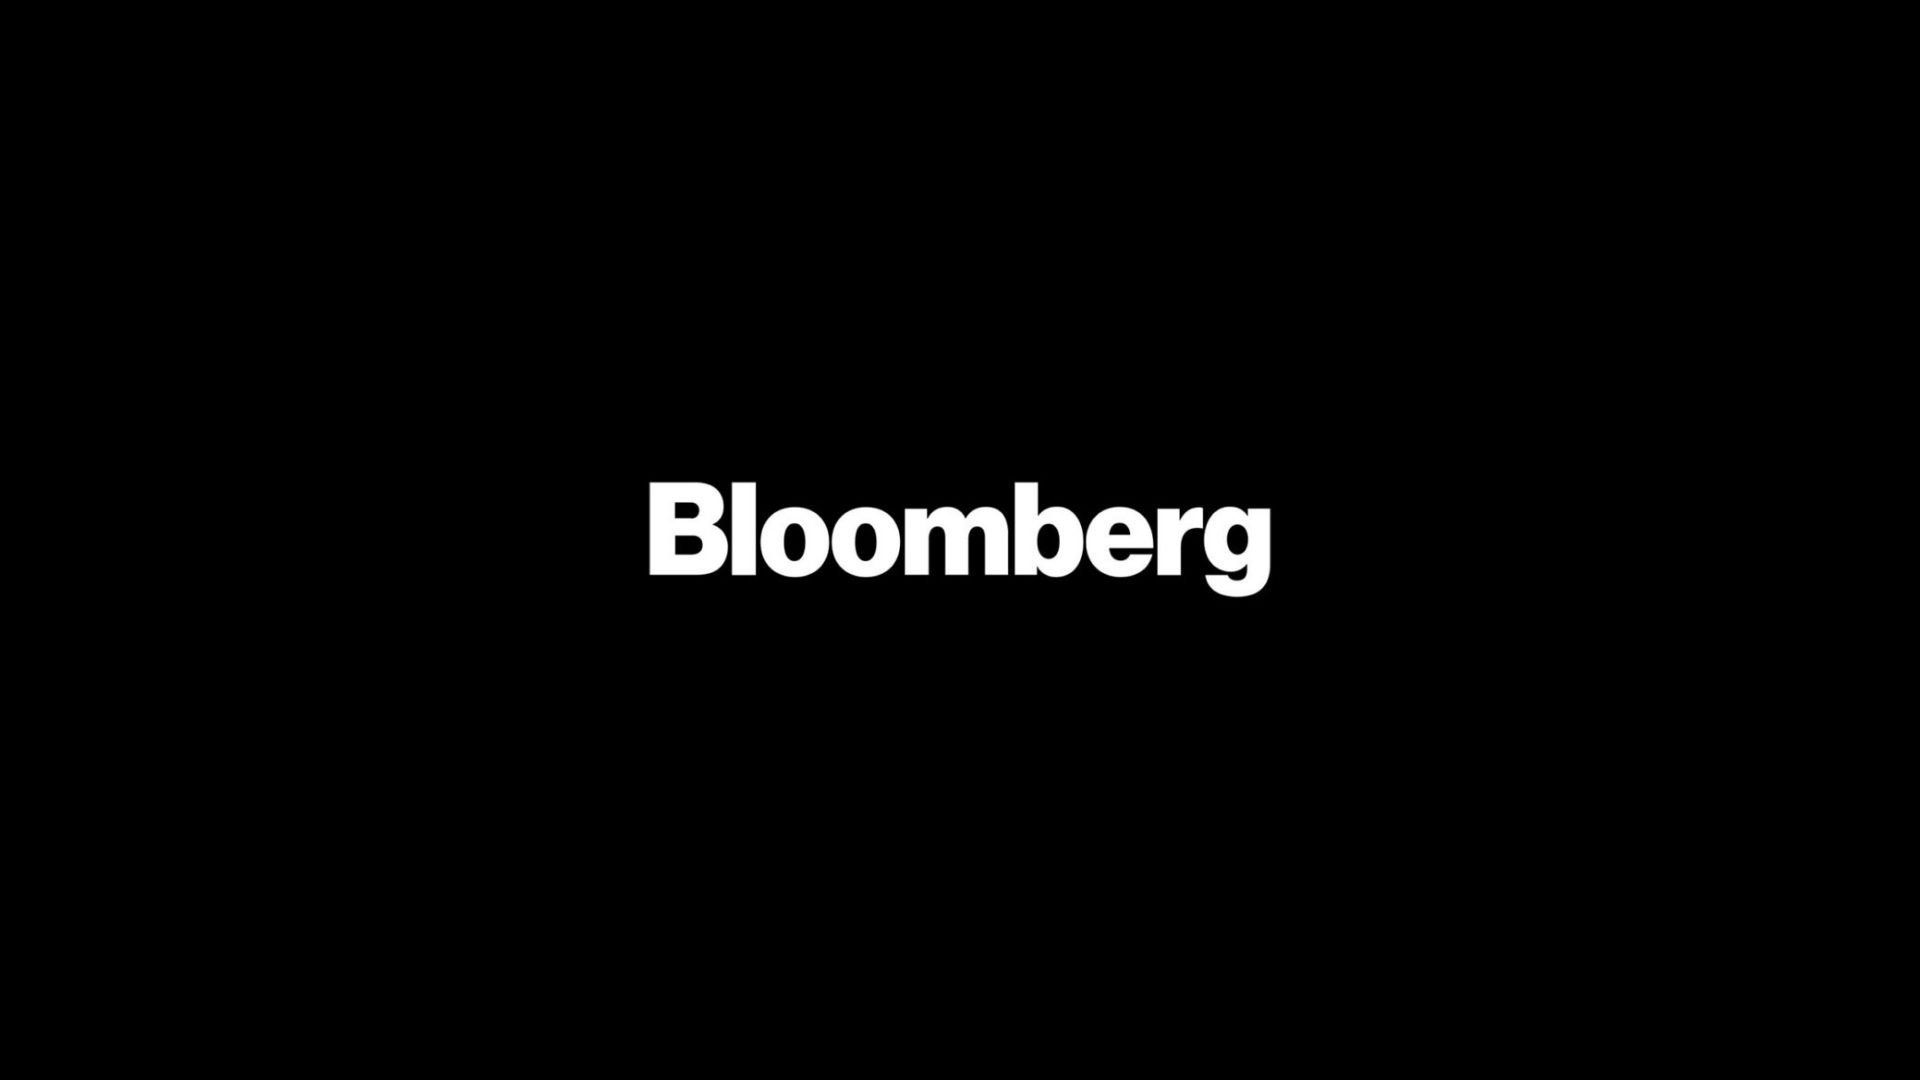 Bloomberg: SPAC Investor Klymochko Says Fed Needs to Raise Rates Quick